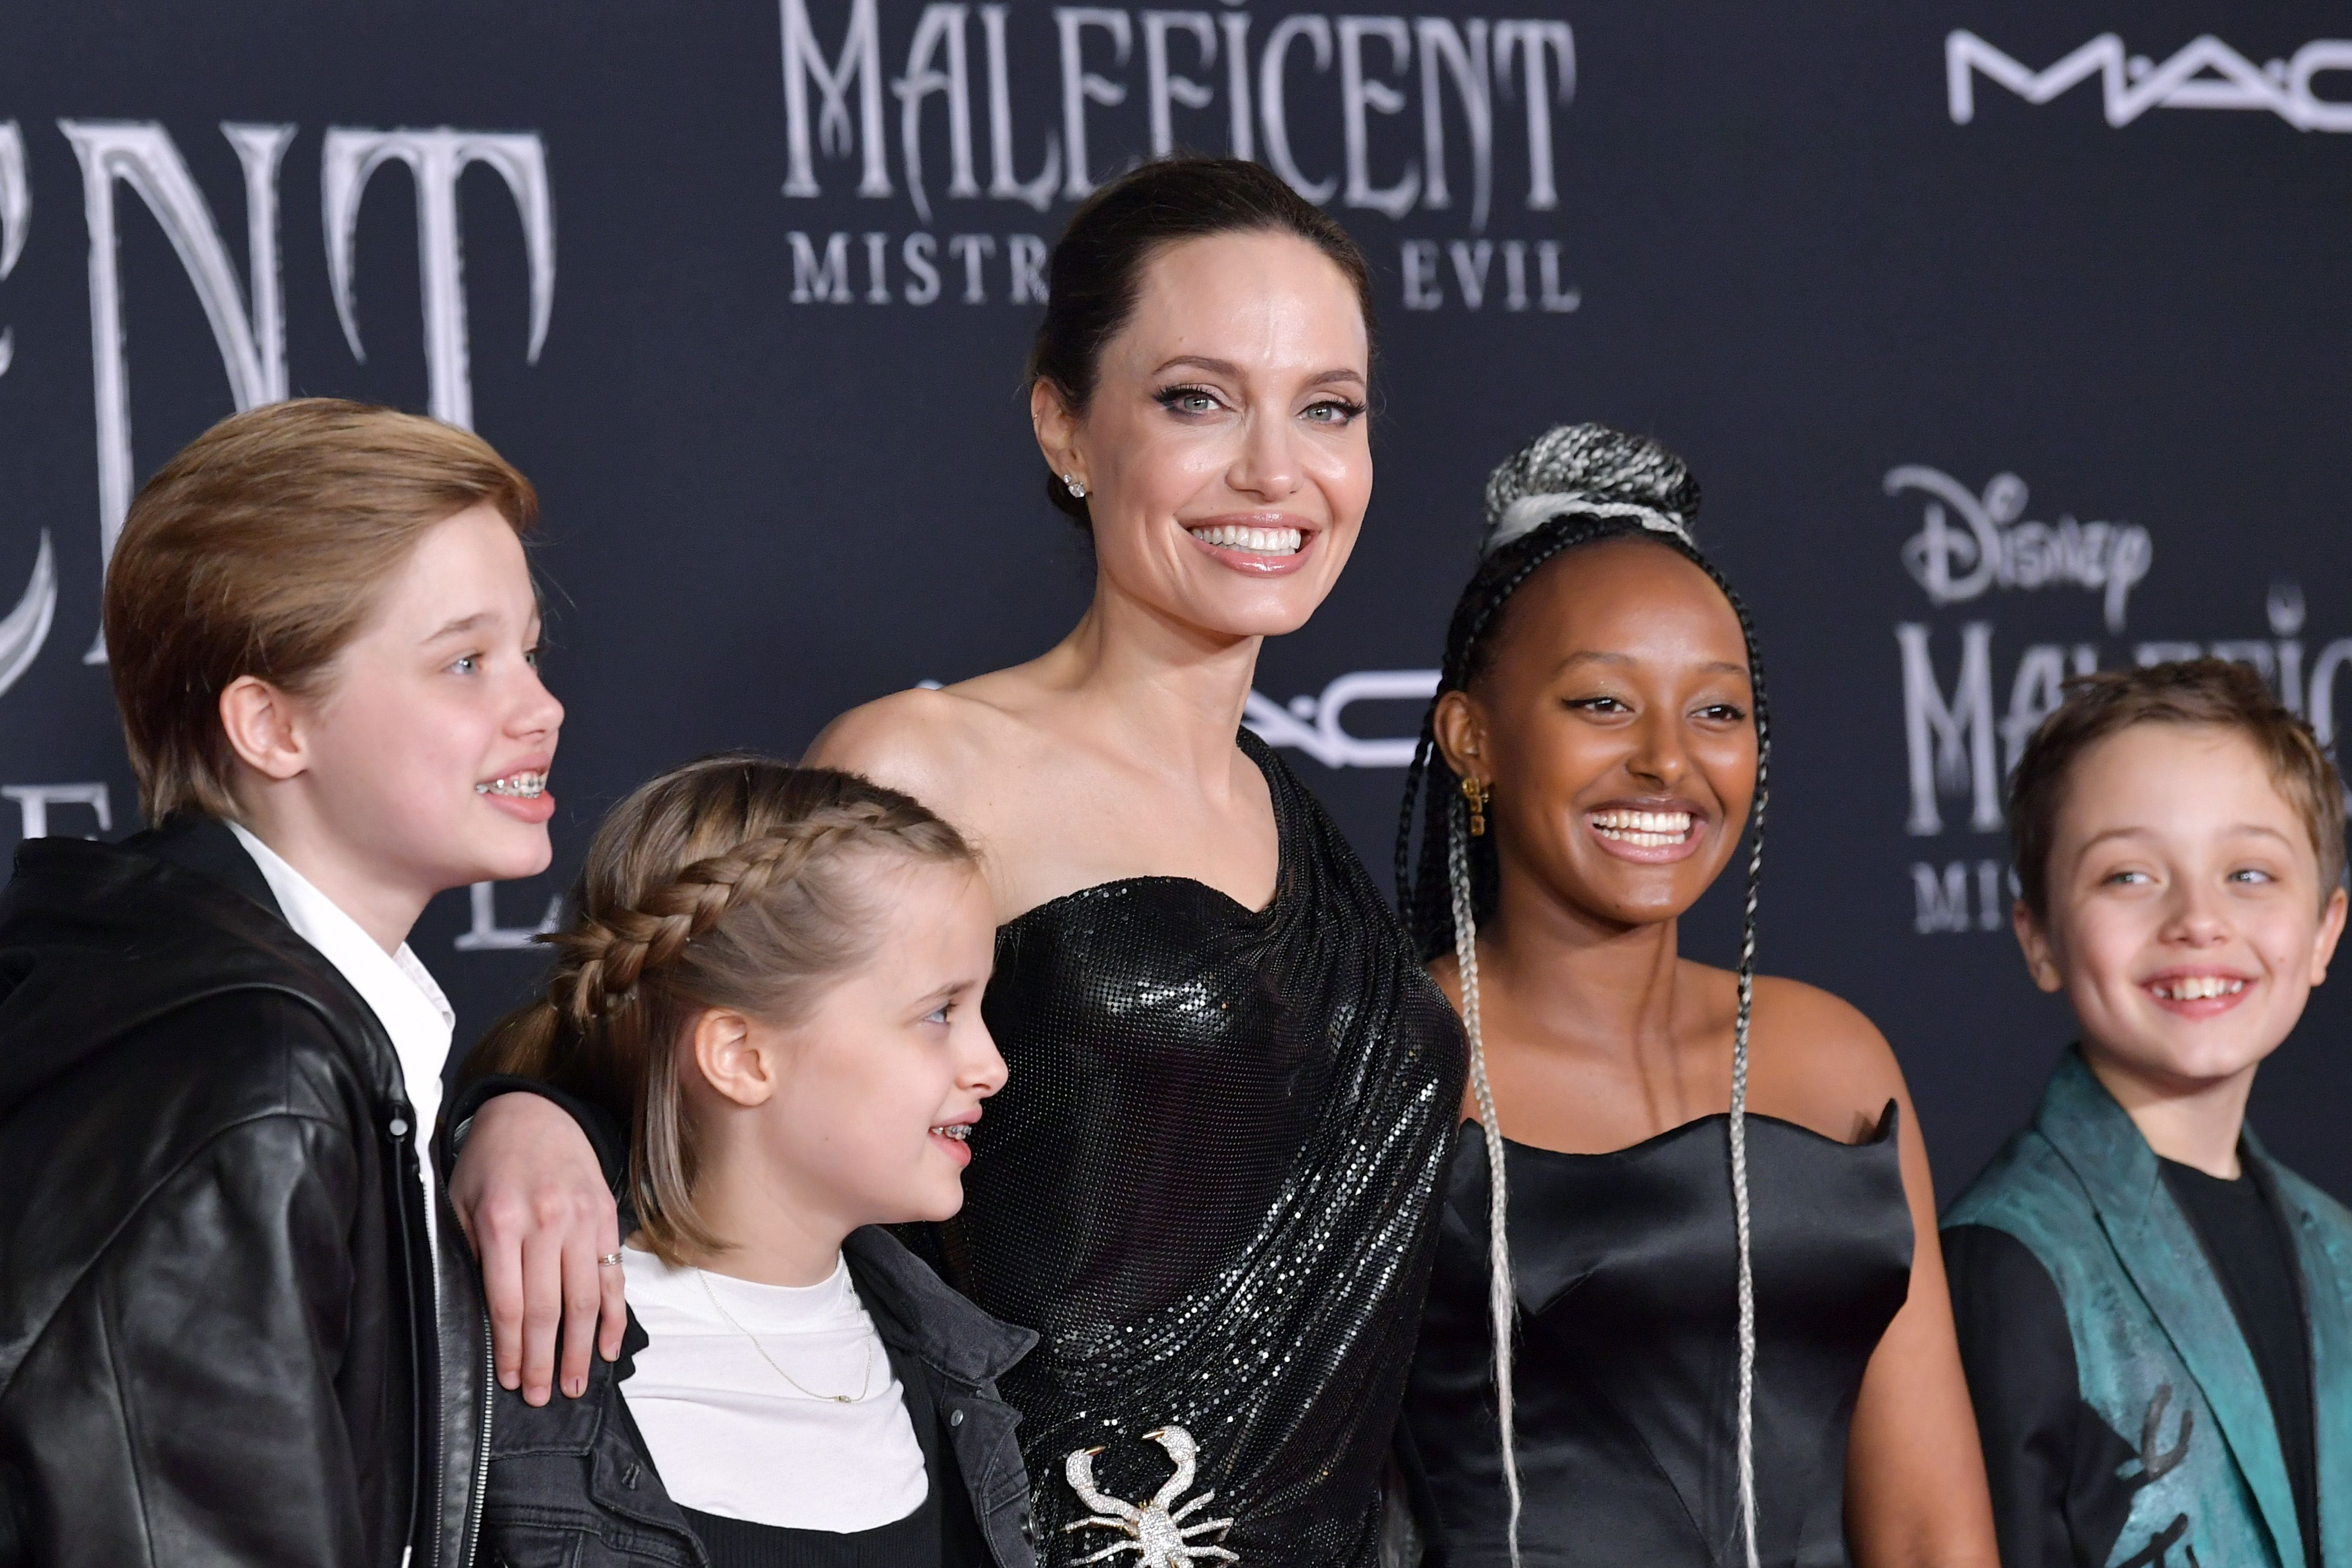 Zahara Jolie-Pitt Wore Pieces From Her Own Jewelry Line to the 'Maleficent' Premiere